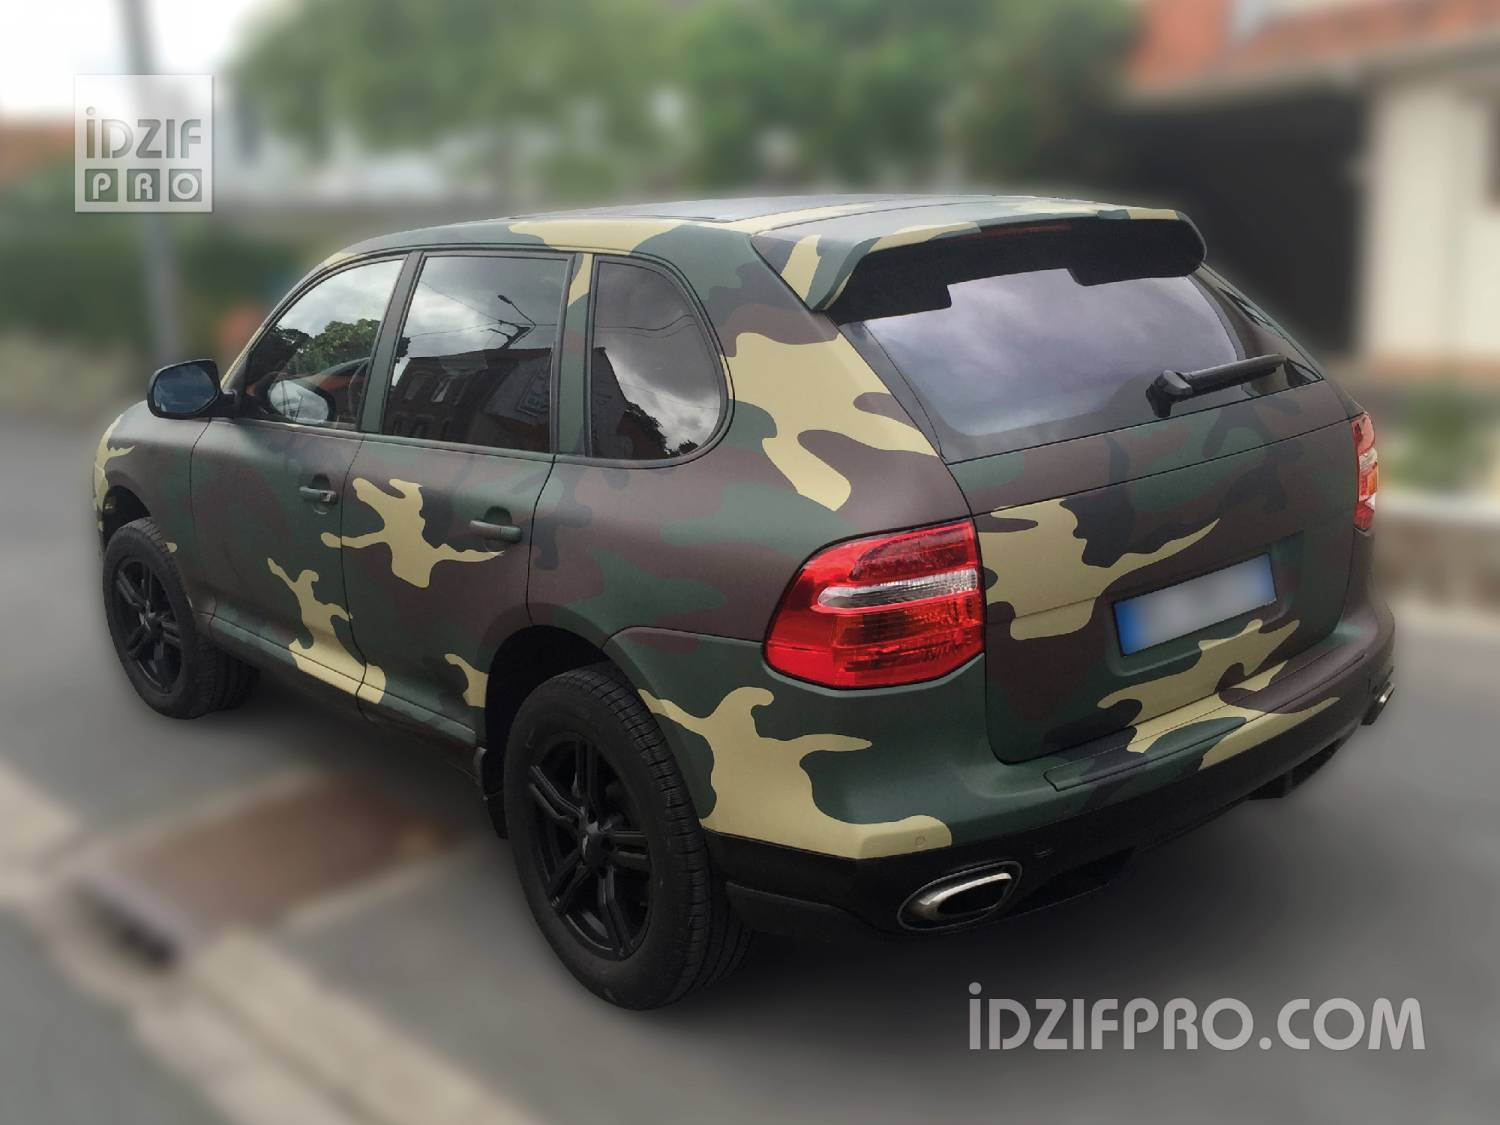 idzif pro covering camouflage militaire sur porsche cayenne. Black Bedroom Furniture Sets. Home Design Ideas